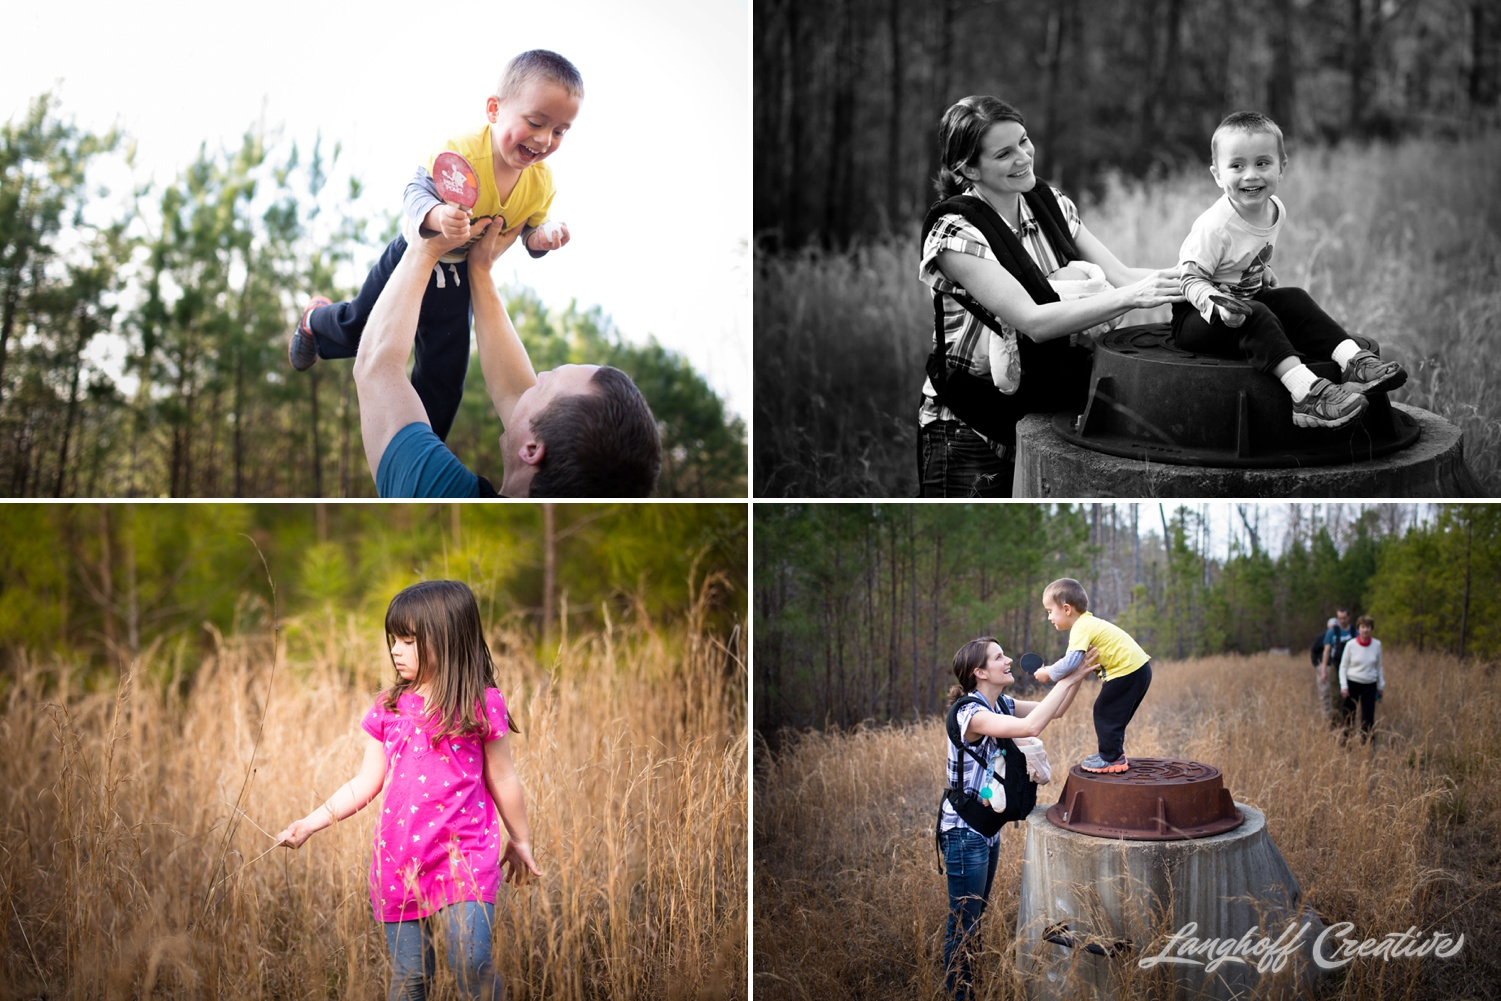 20170211-SchulteFamily-RealLifeSession-DayInTheLife-Twins-LanghoffCreative-DocumentaryFamilyPhotography-RDUphotographer-13-photo.jpg